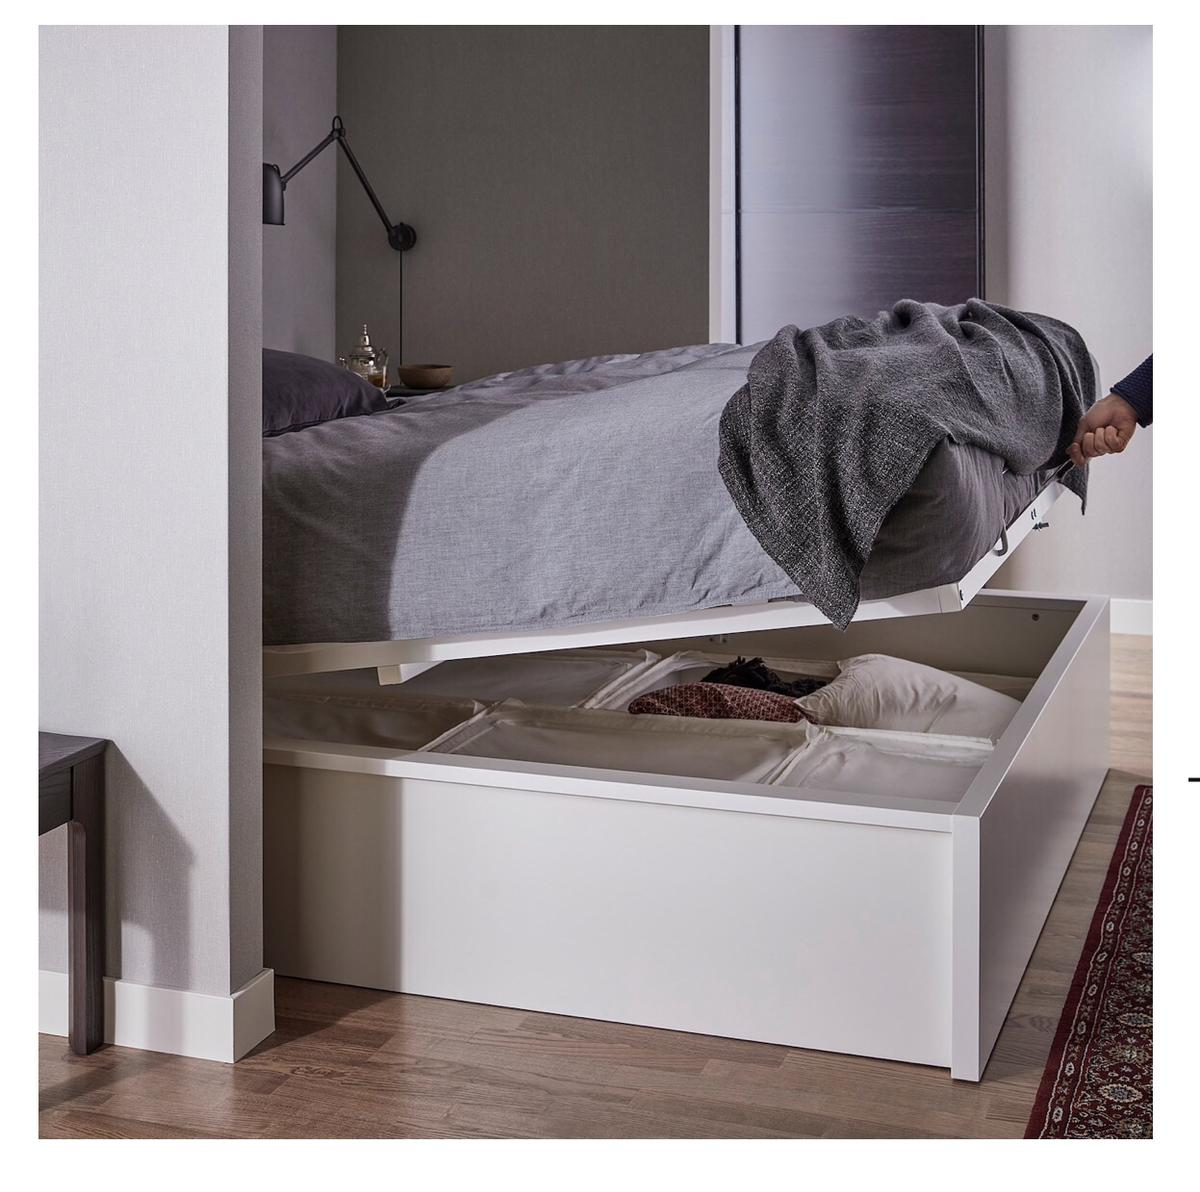 Super Ikea Malm Ottoman Bed Standard King In B70 Sandwell For Gmtry Best Dining Table And Chair Ideas Images Gmtryco